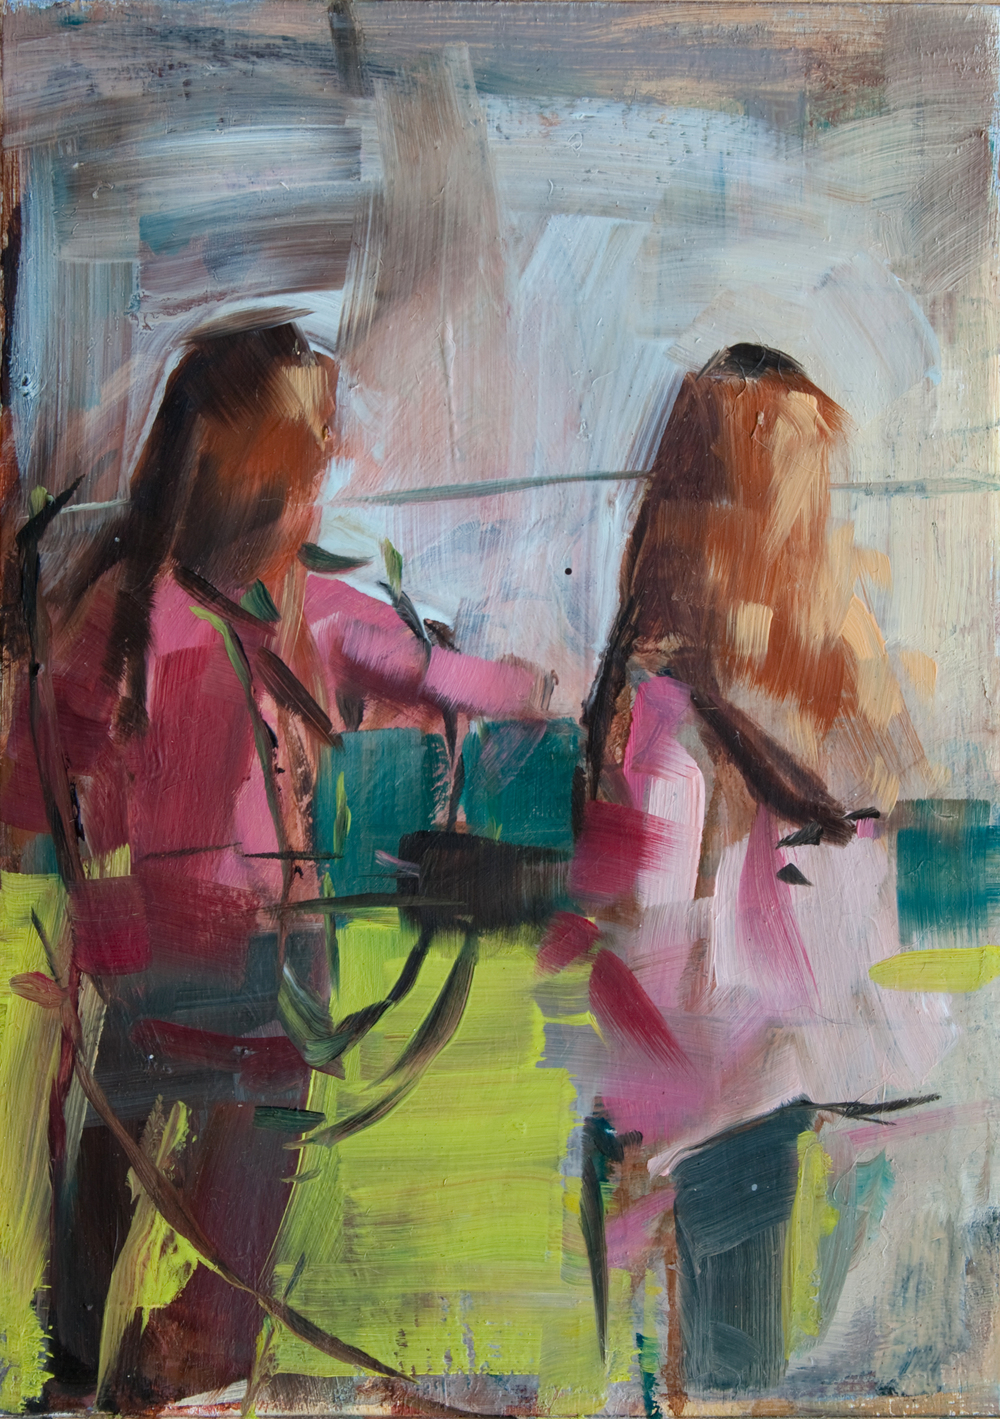 "The Girls, oil on panel, 7"" x 5"", 2012, Private Collection"